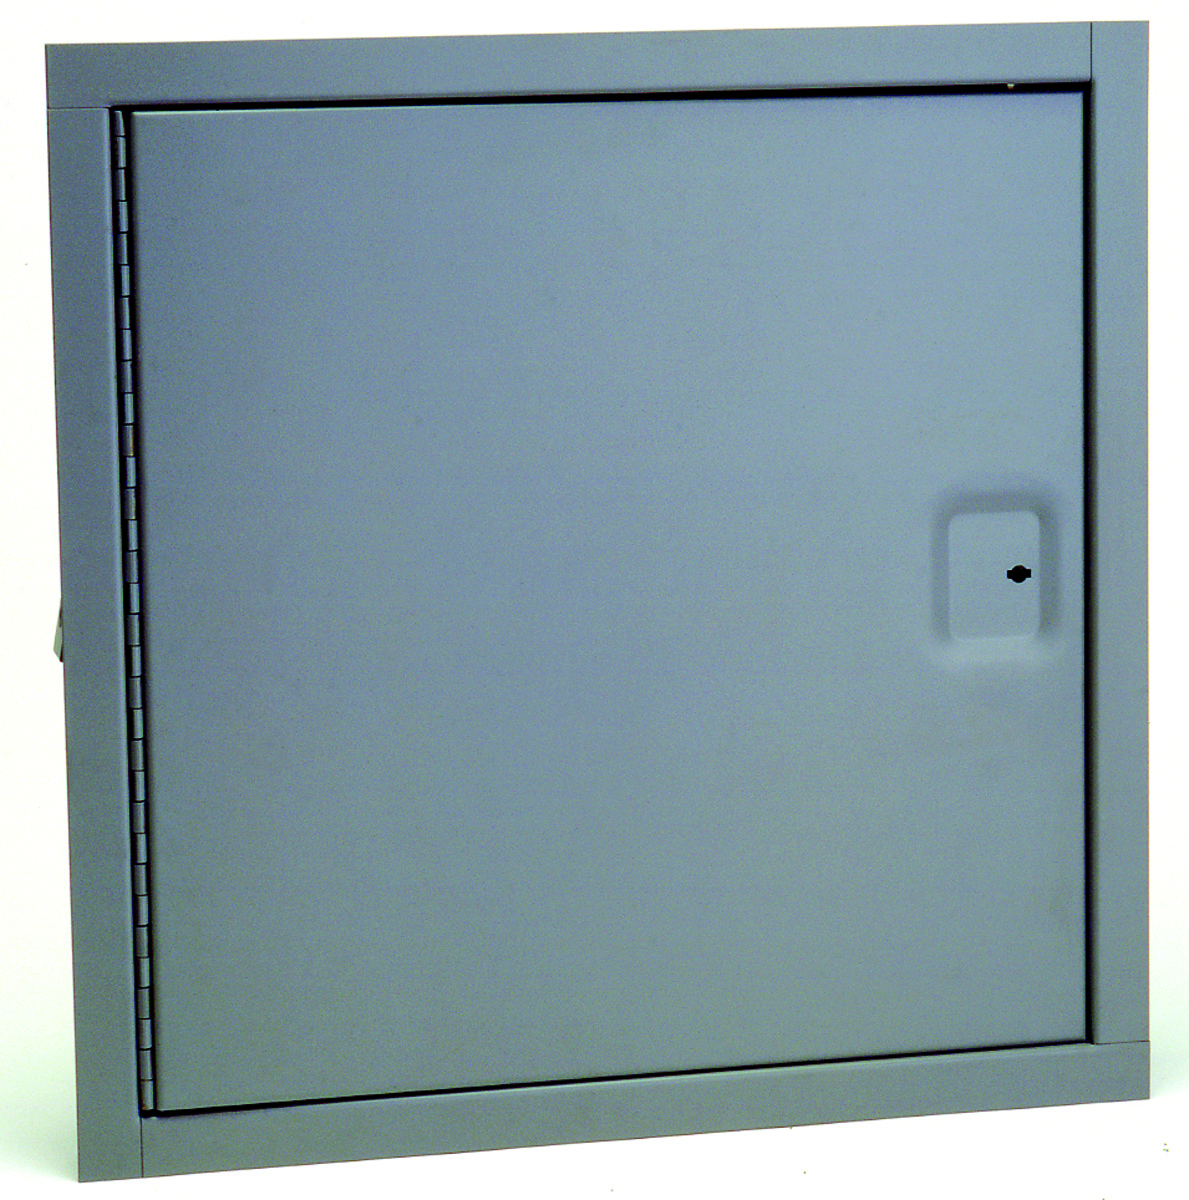 Access Doors Amp Hardware Access Doors Fire Rated Access Doors For Walls Amp Ceilings